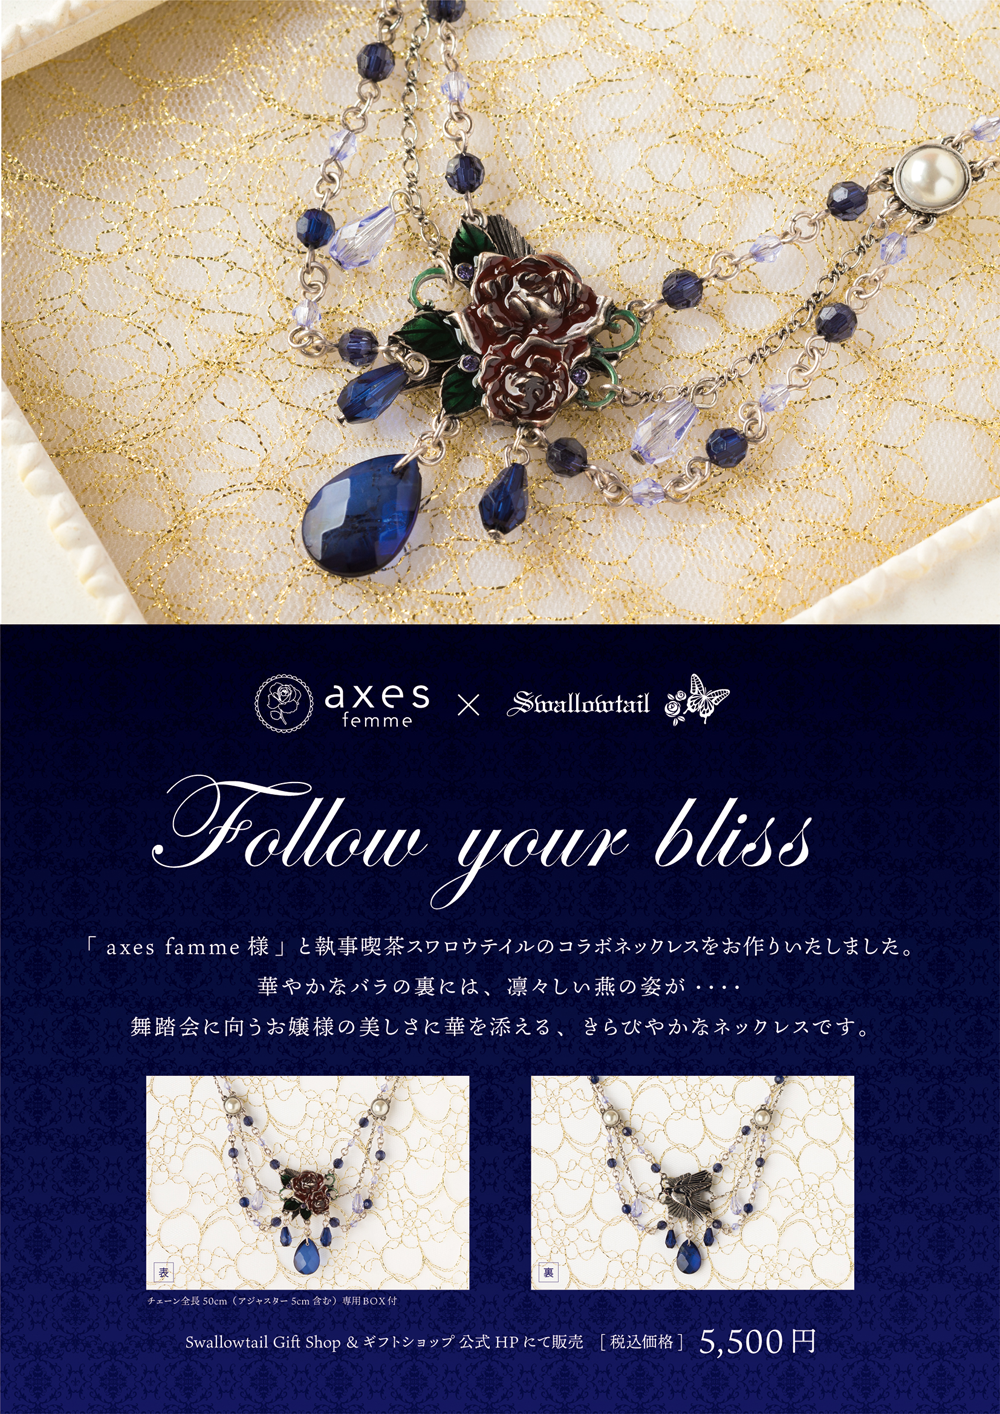 「Follow your bliss」発売のお知らせ